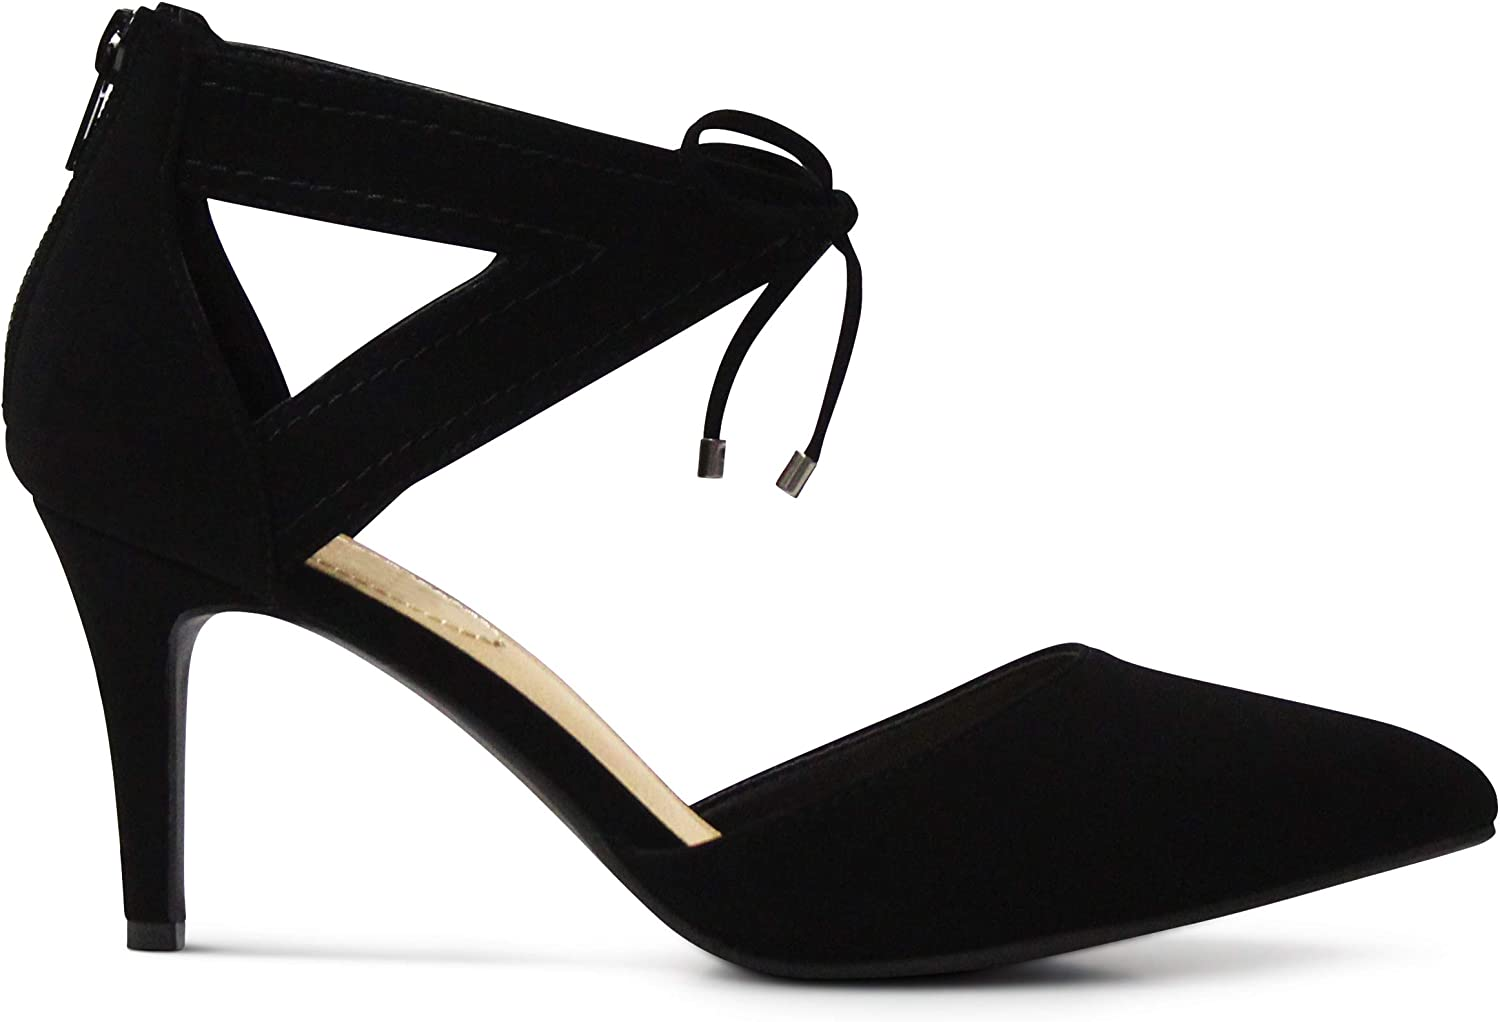 AFFORDABLE FOOTWEAR Women's Pointed Toe